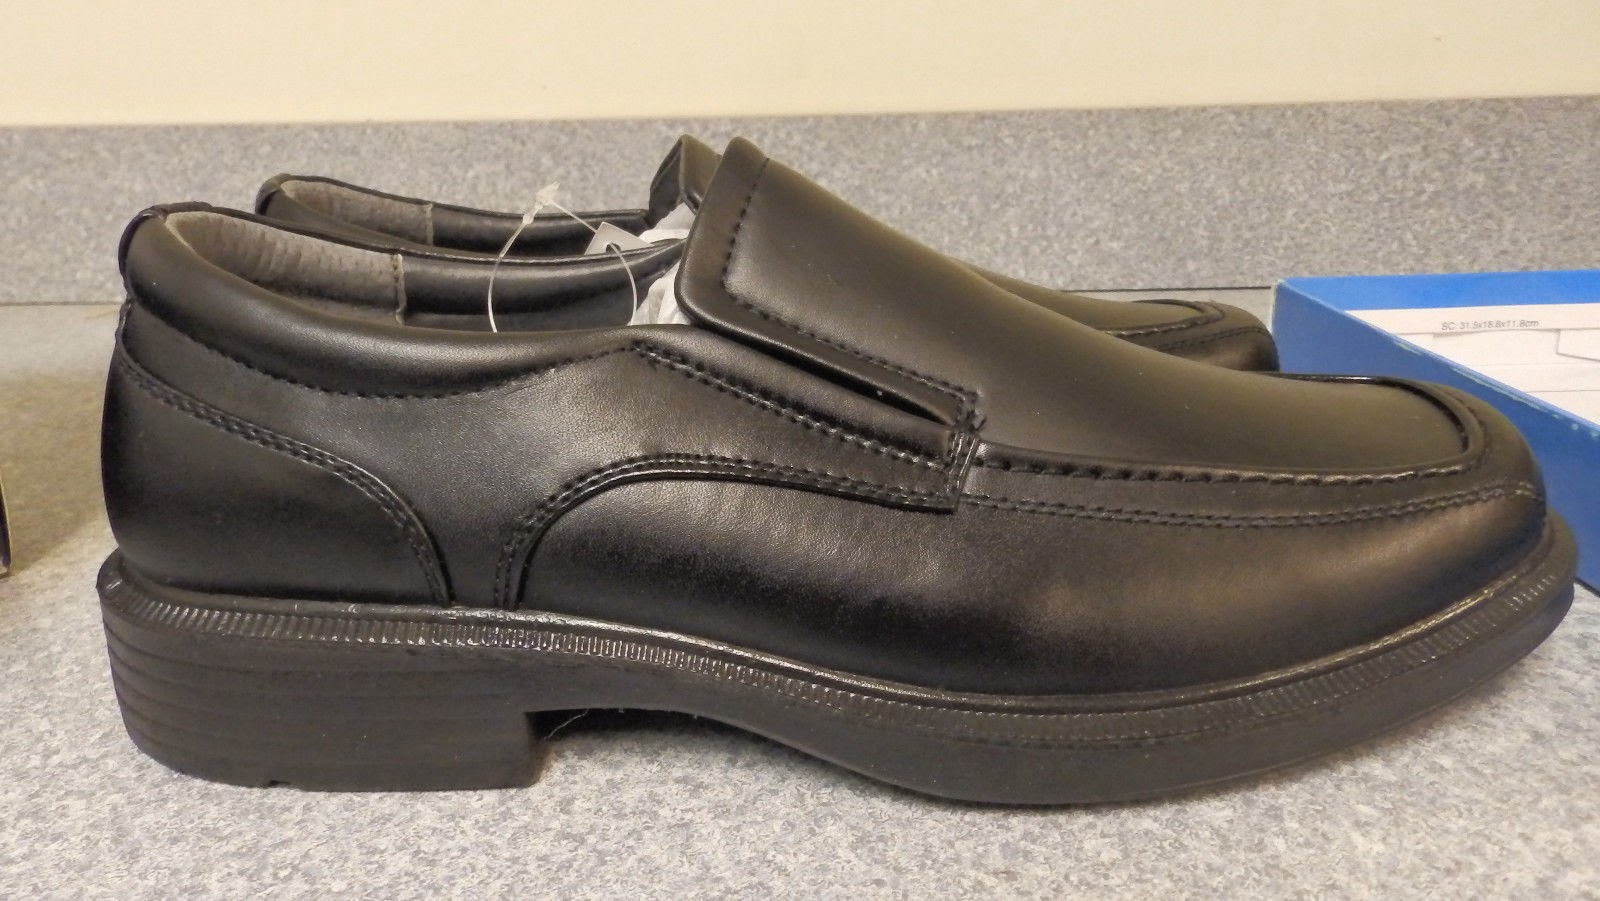 http://www.ebay.com/itm/Soft-Stags-Mens-shoes-Mason-Black-size-10M-Vegan-/321689700351?pt=LH_DefaultDomain_0&hash=item4ae63347ff